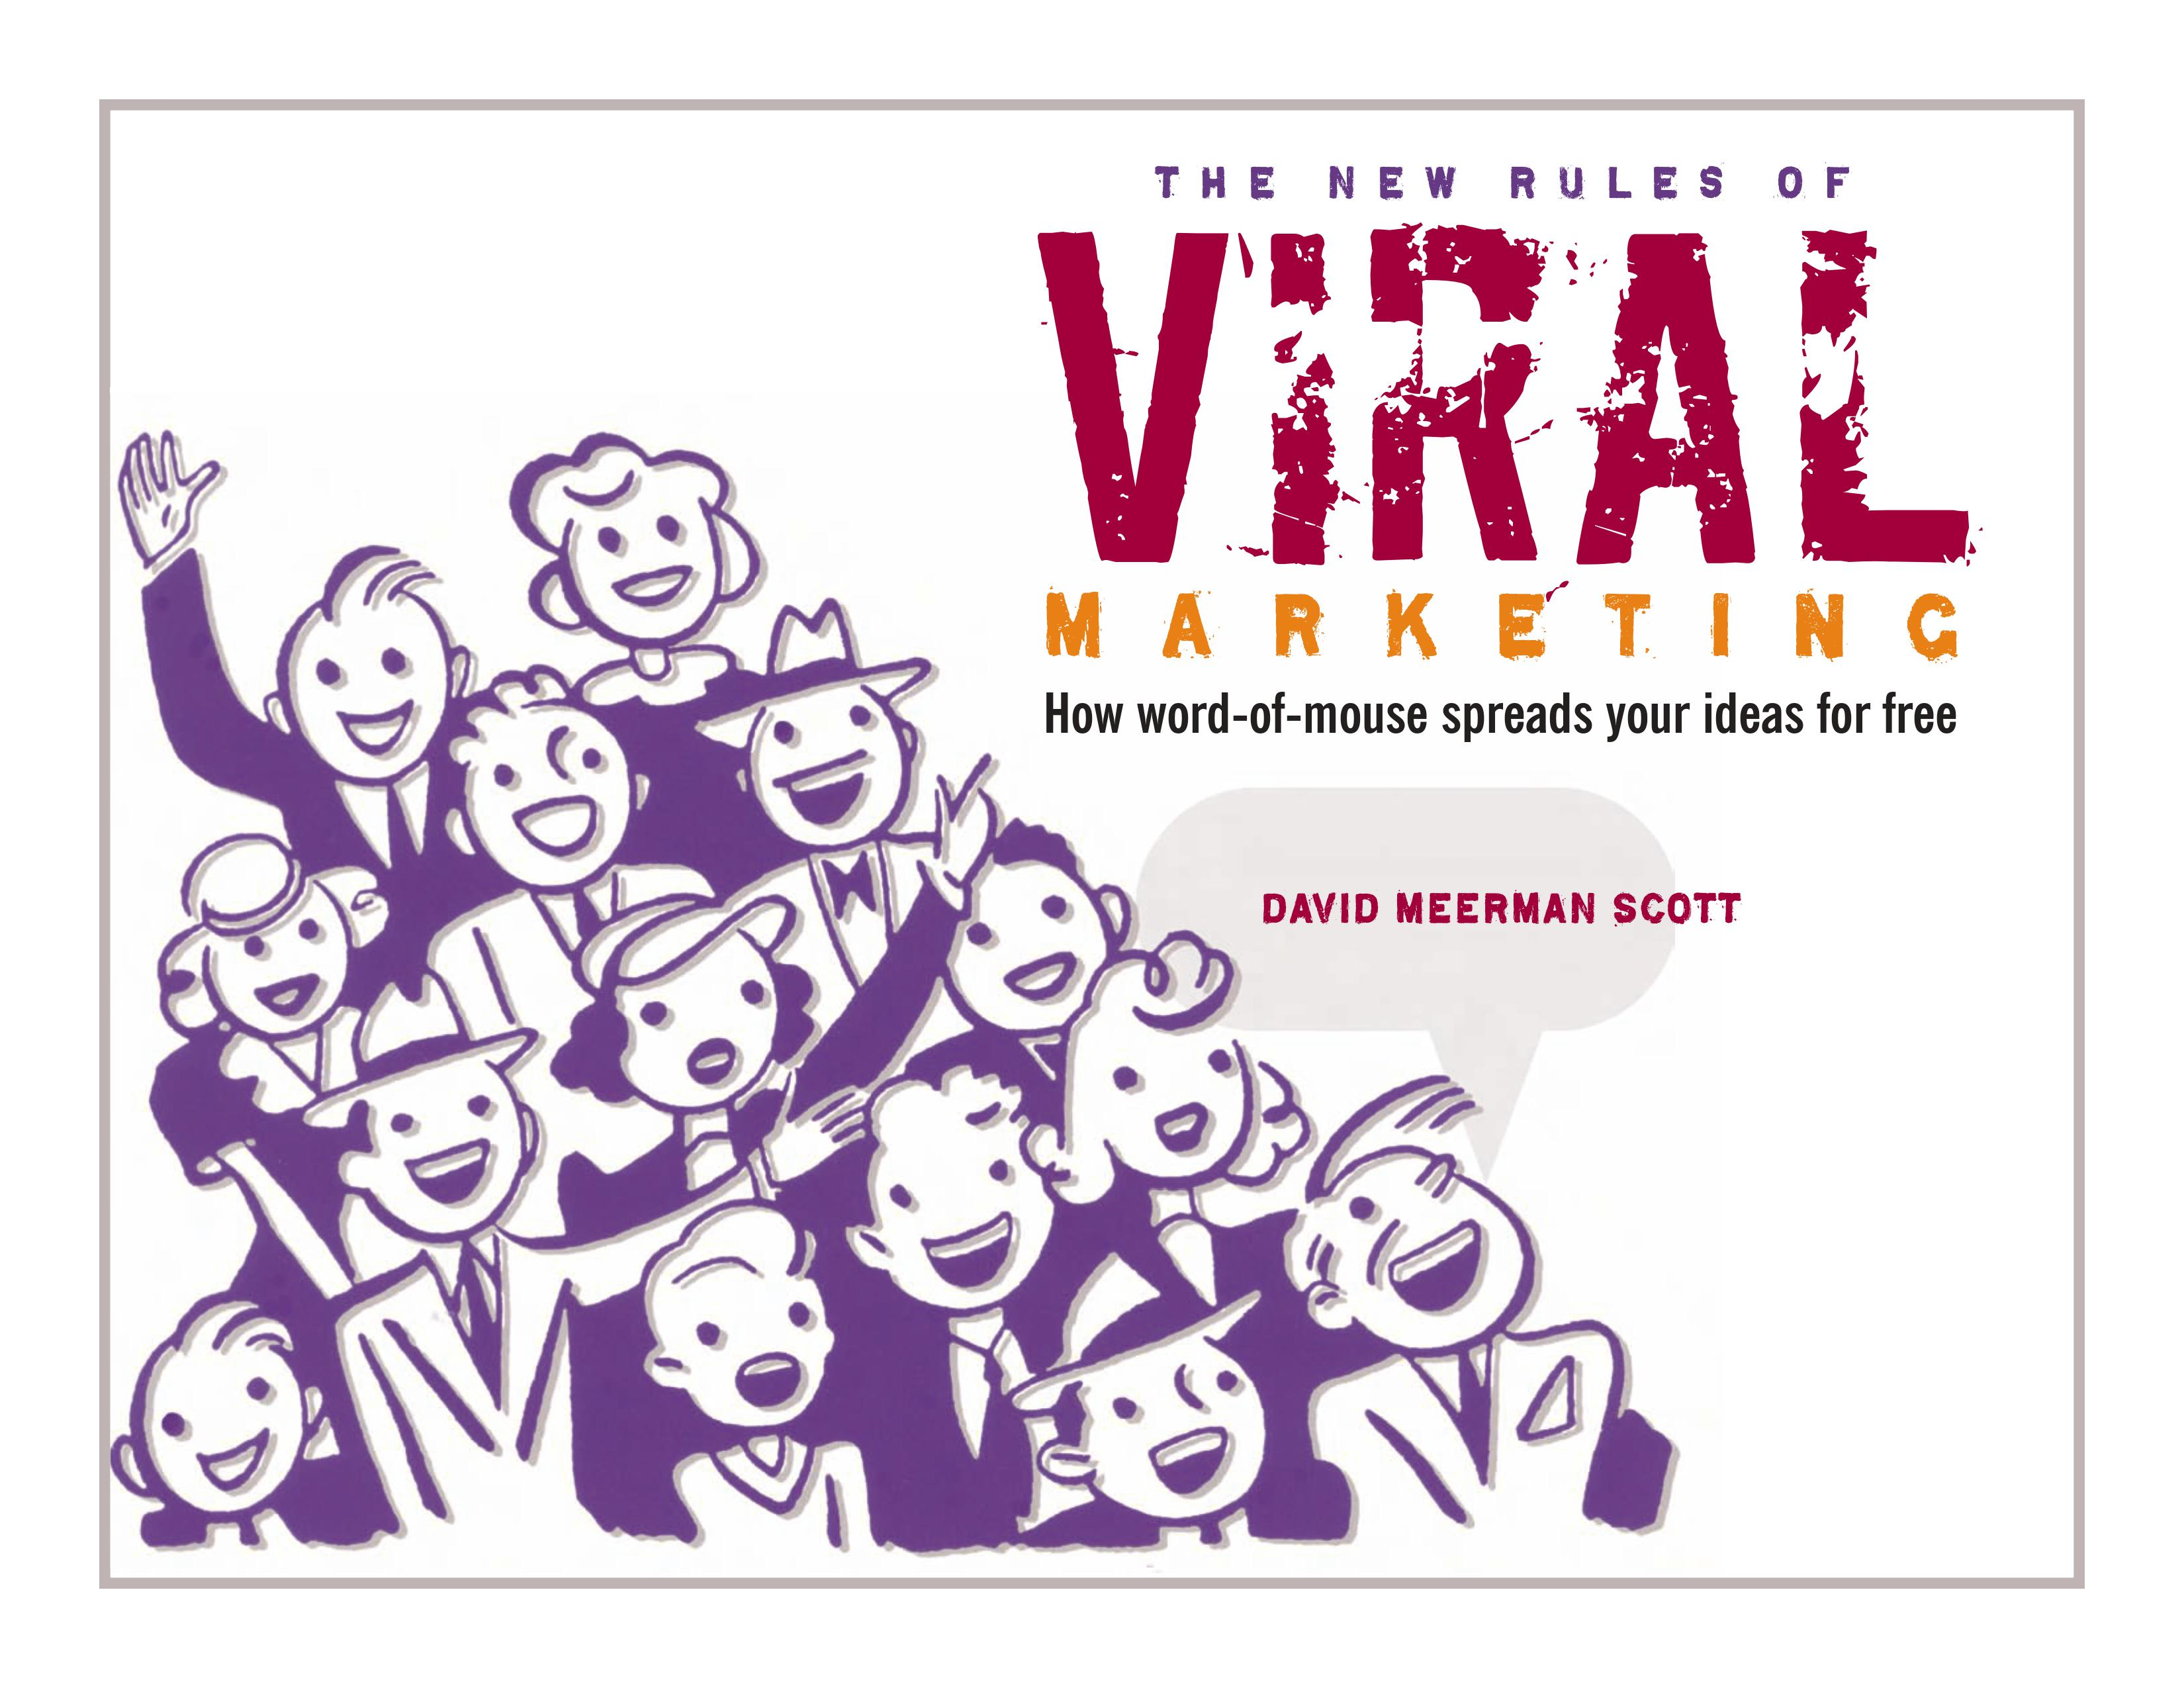 The New Rules of Viral Marketing